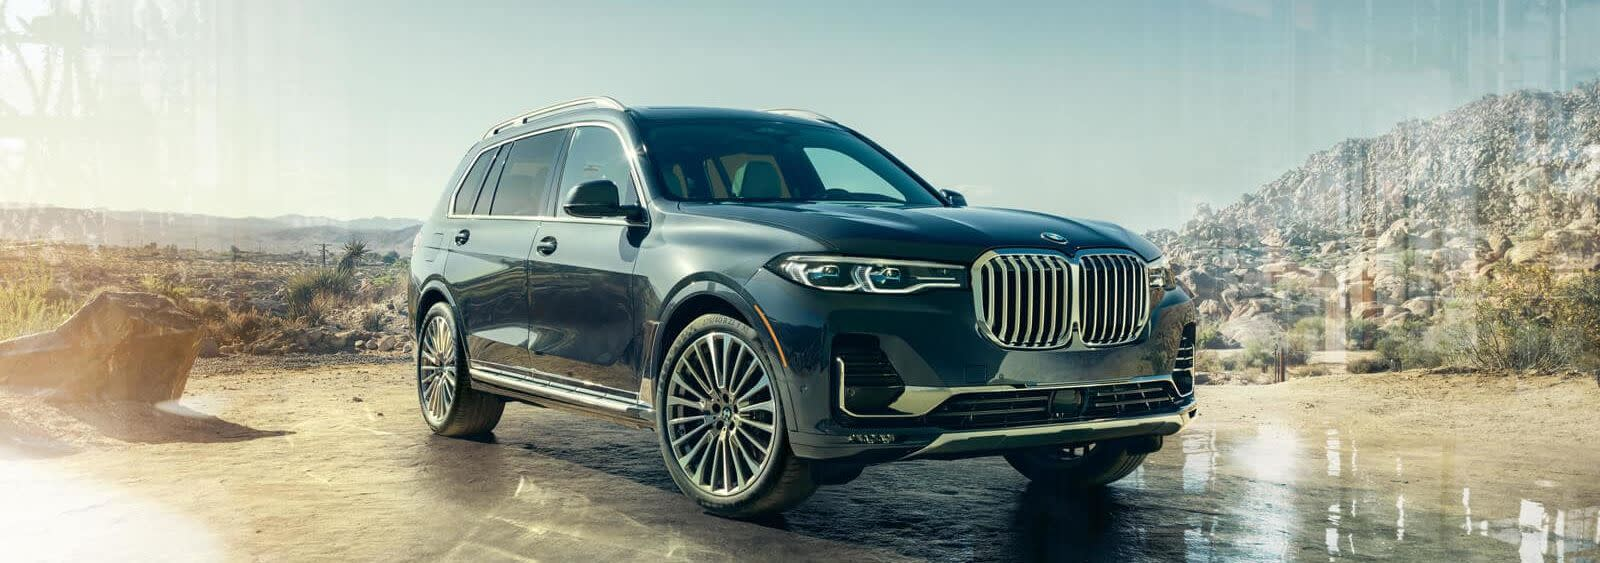 2019 BMW X7 for Sale near Grapevine, TX